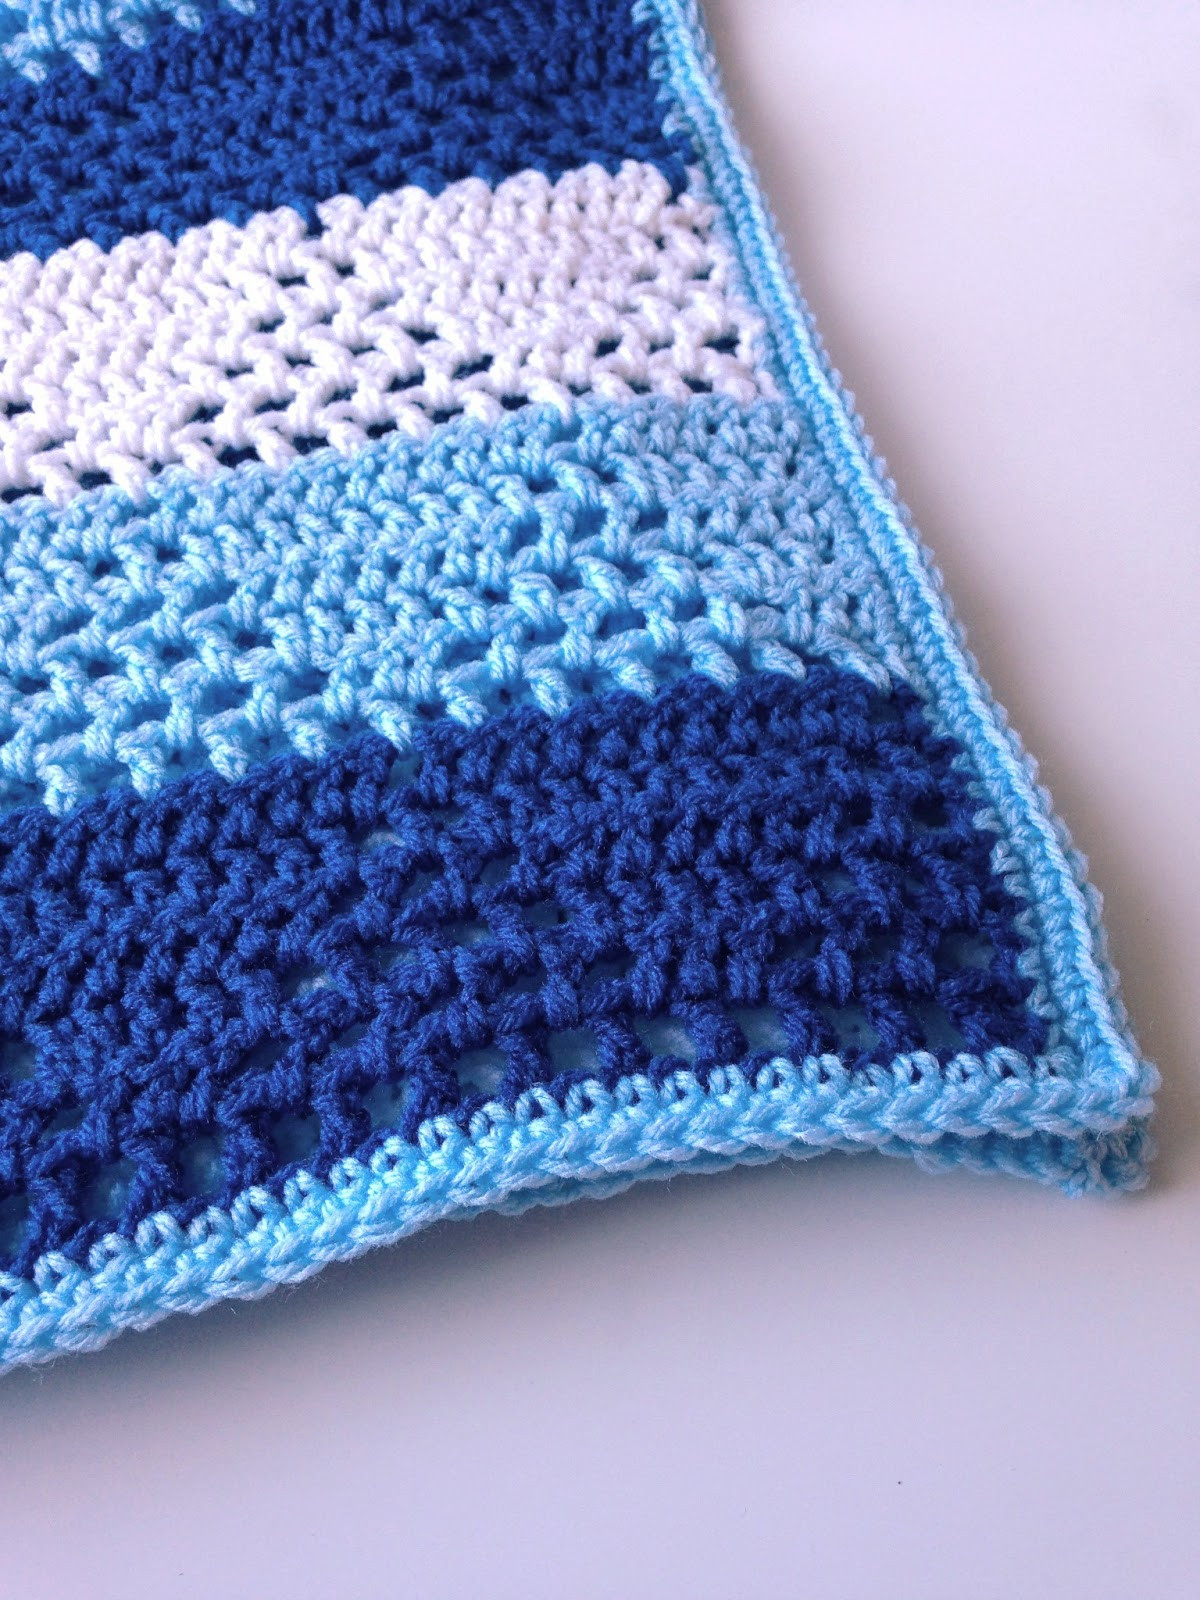 Baby Boy Crochet Blanket Patterns Elegant 5 Little Monsters Triangles & Stripes Baby Blanket Of Baby Boy Crochet Blanket Patterns New Beautiful Baby Boy Blanket Crochet Pattern for Pram